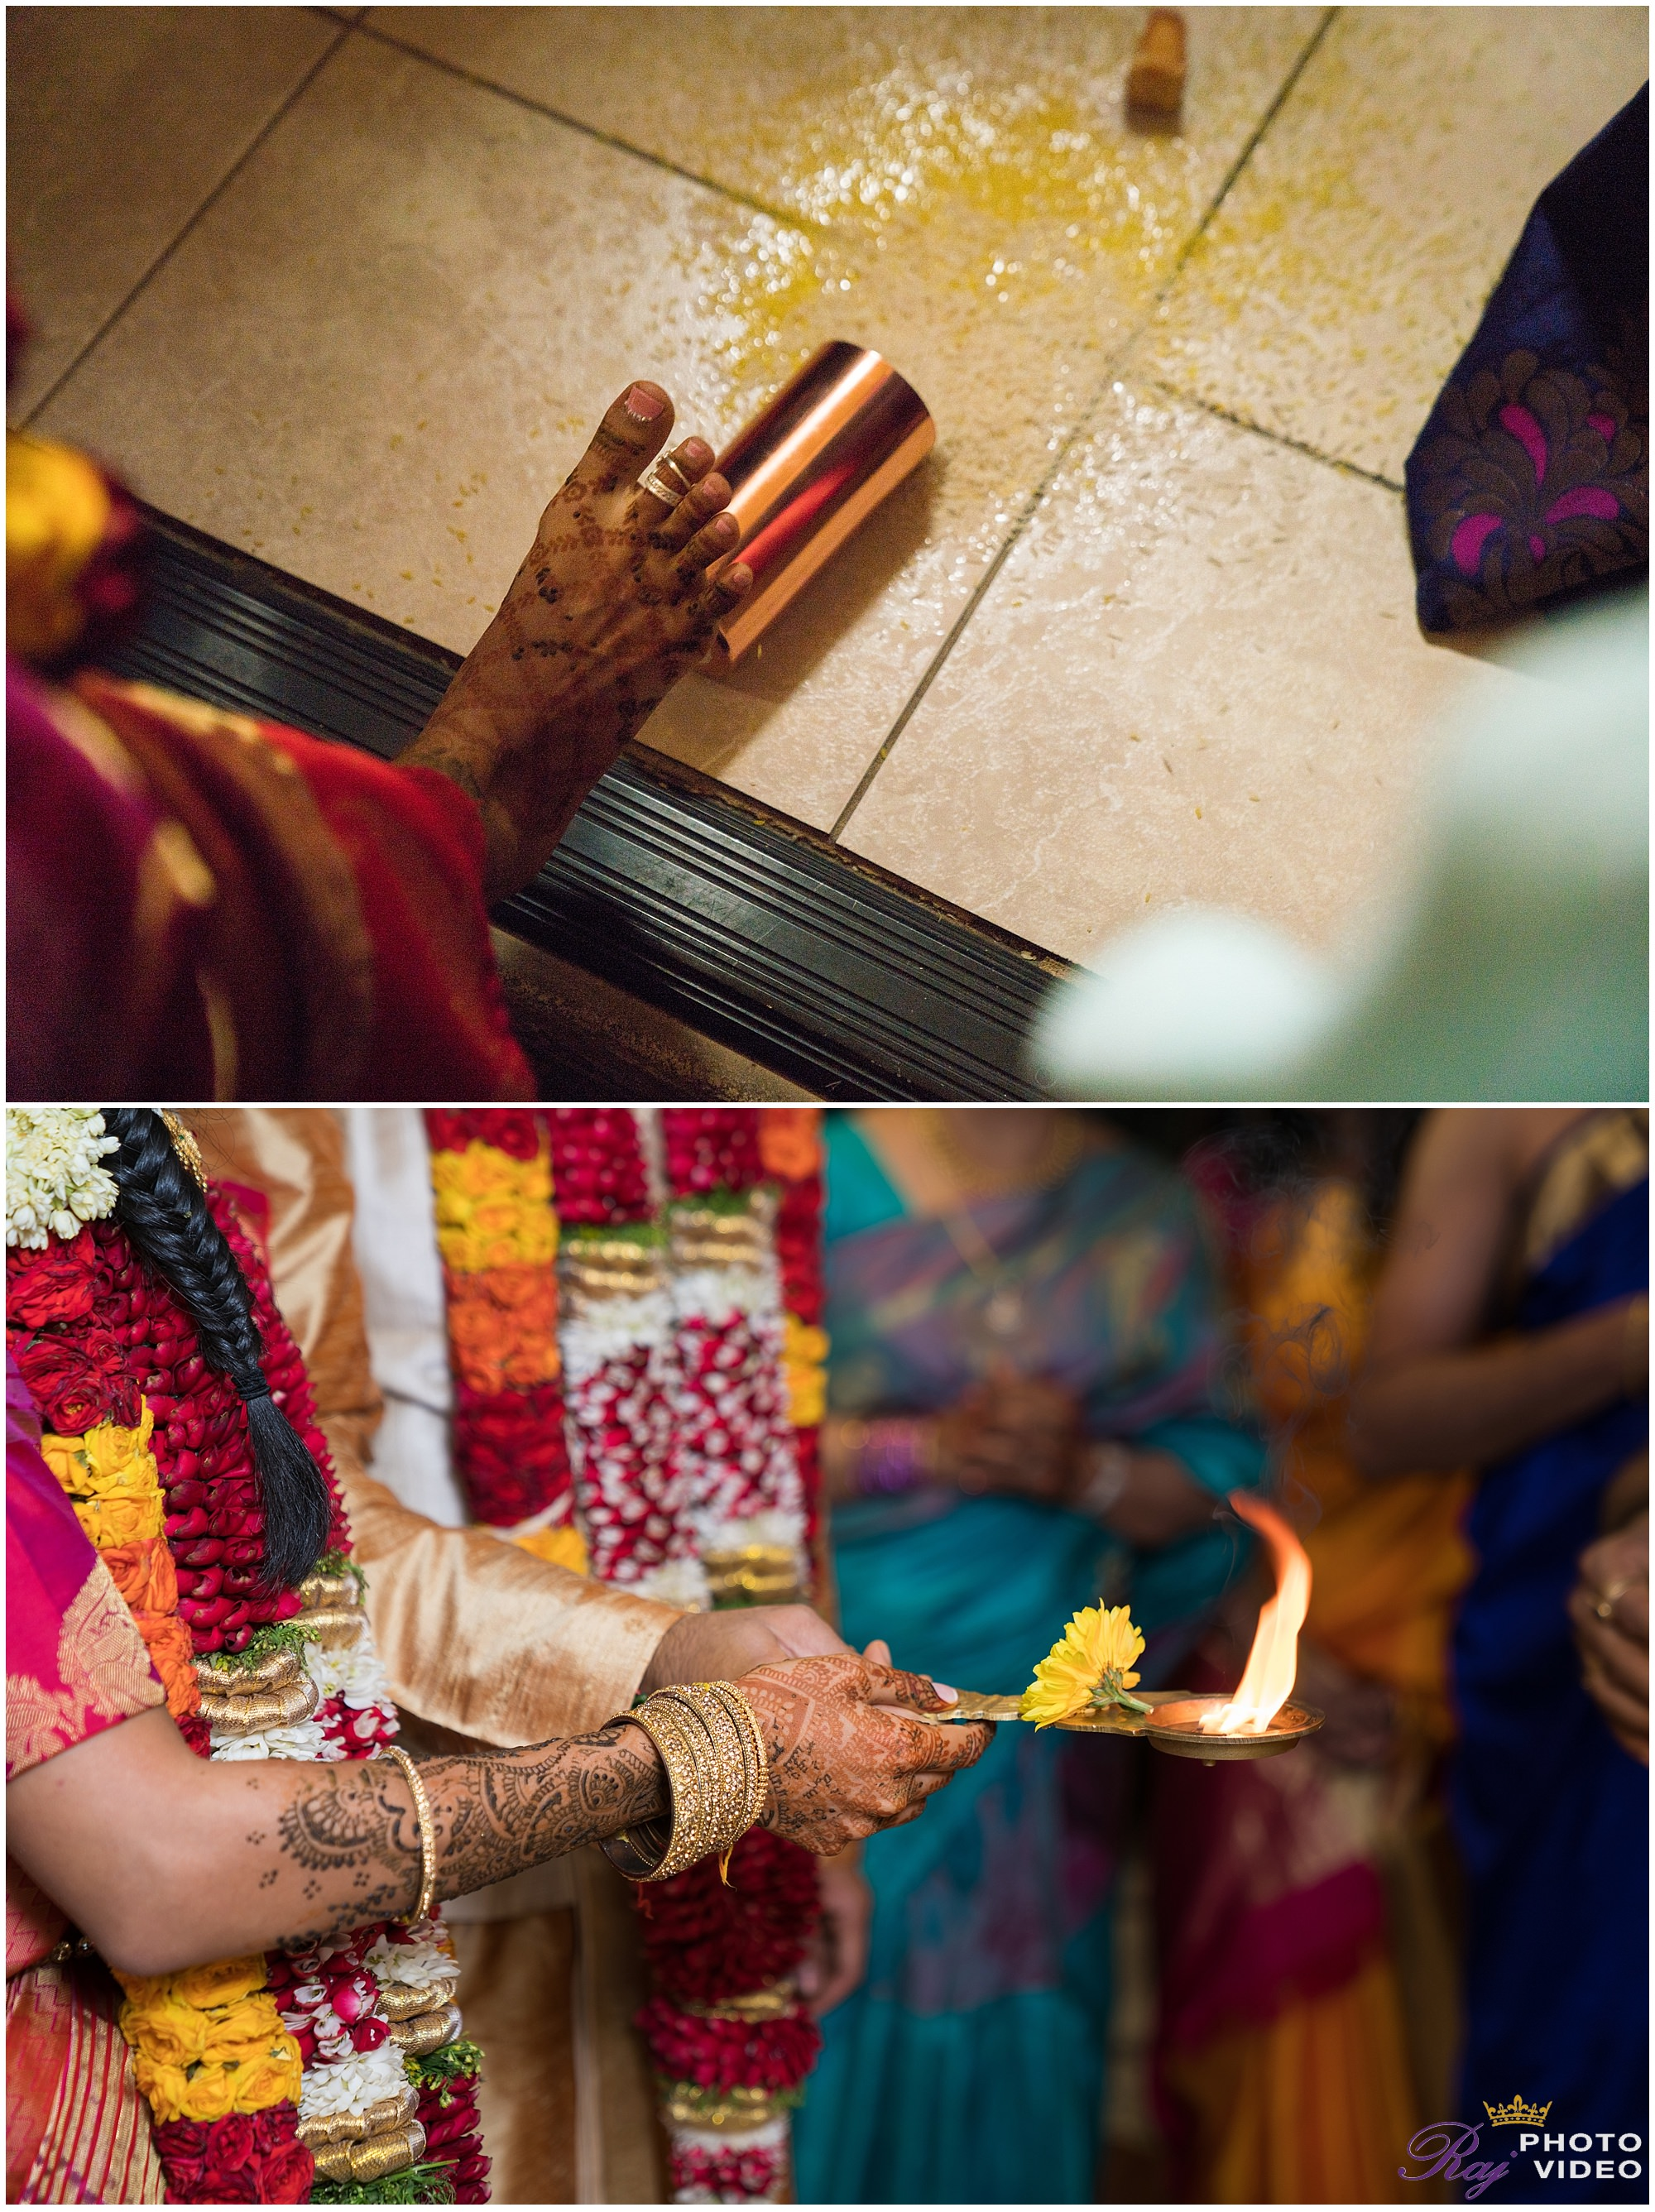 Sri_Venkata_Krishna_Kshetra_Temple_Tempe_Arizona_Indian_Wedding_Sapna_Shyam-18.jpg